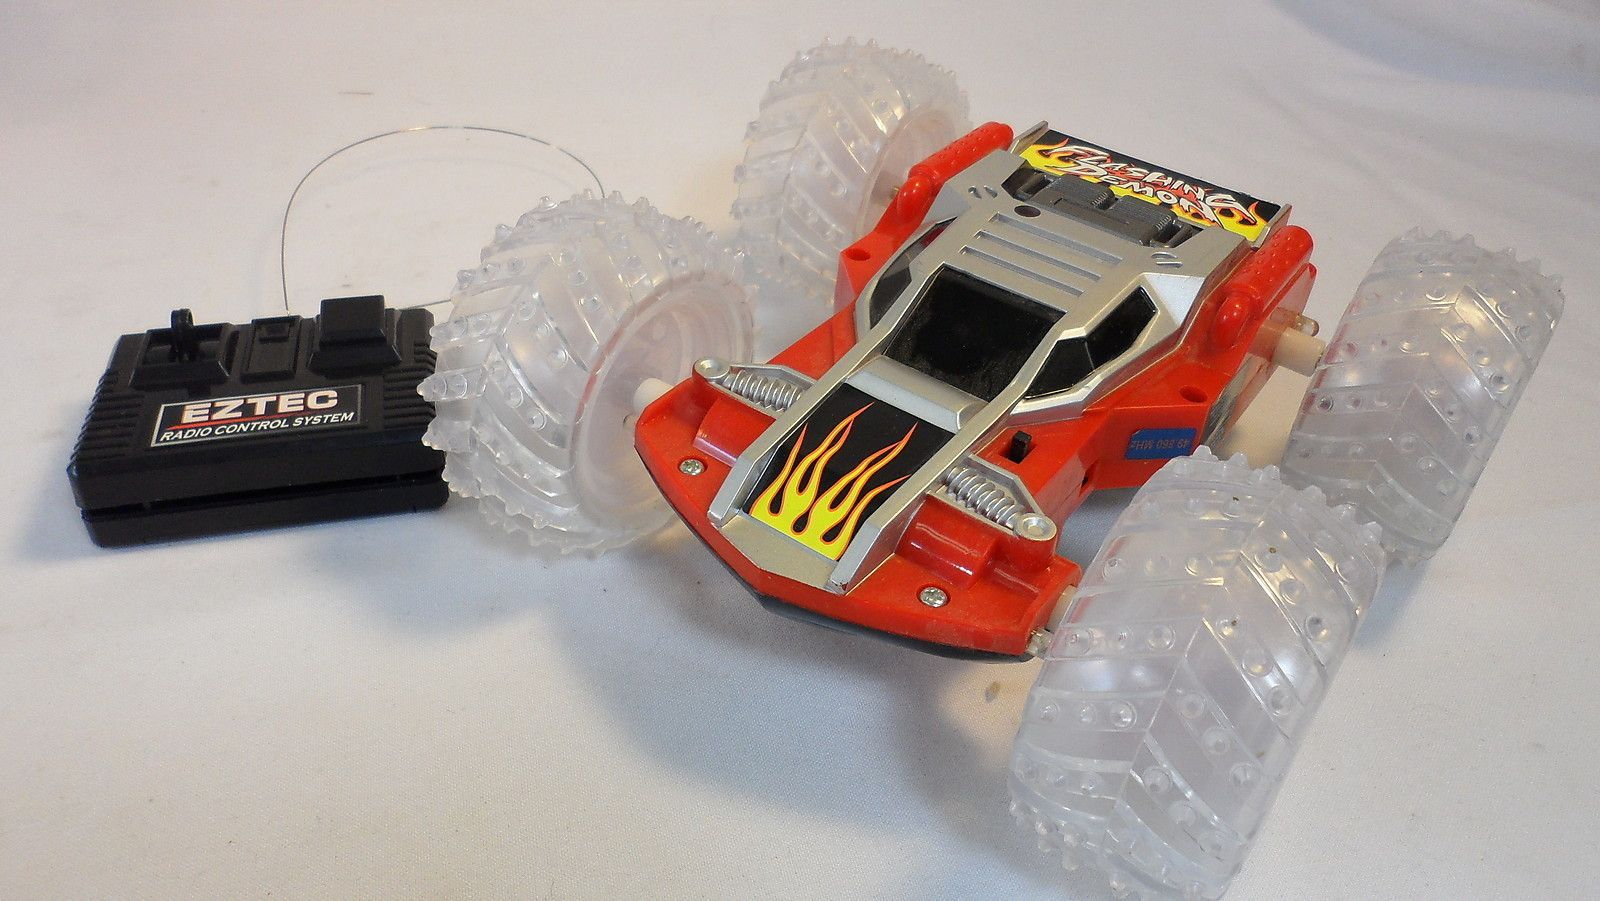 flashing demon remote control car instructions